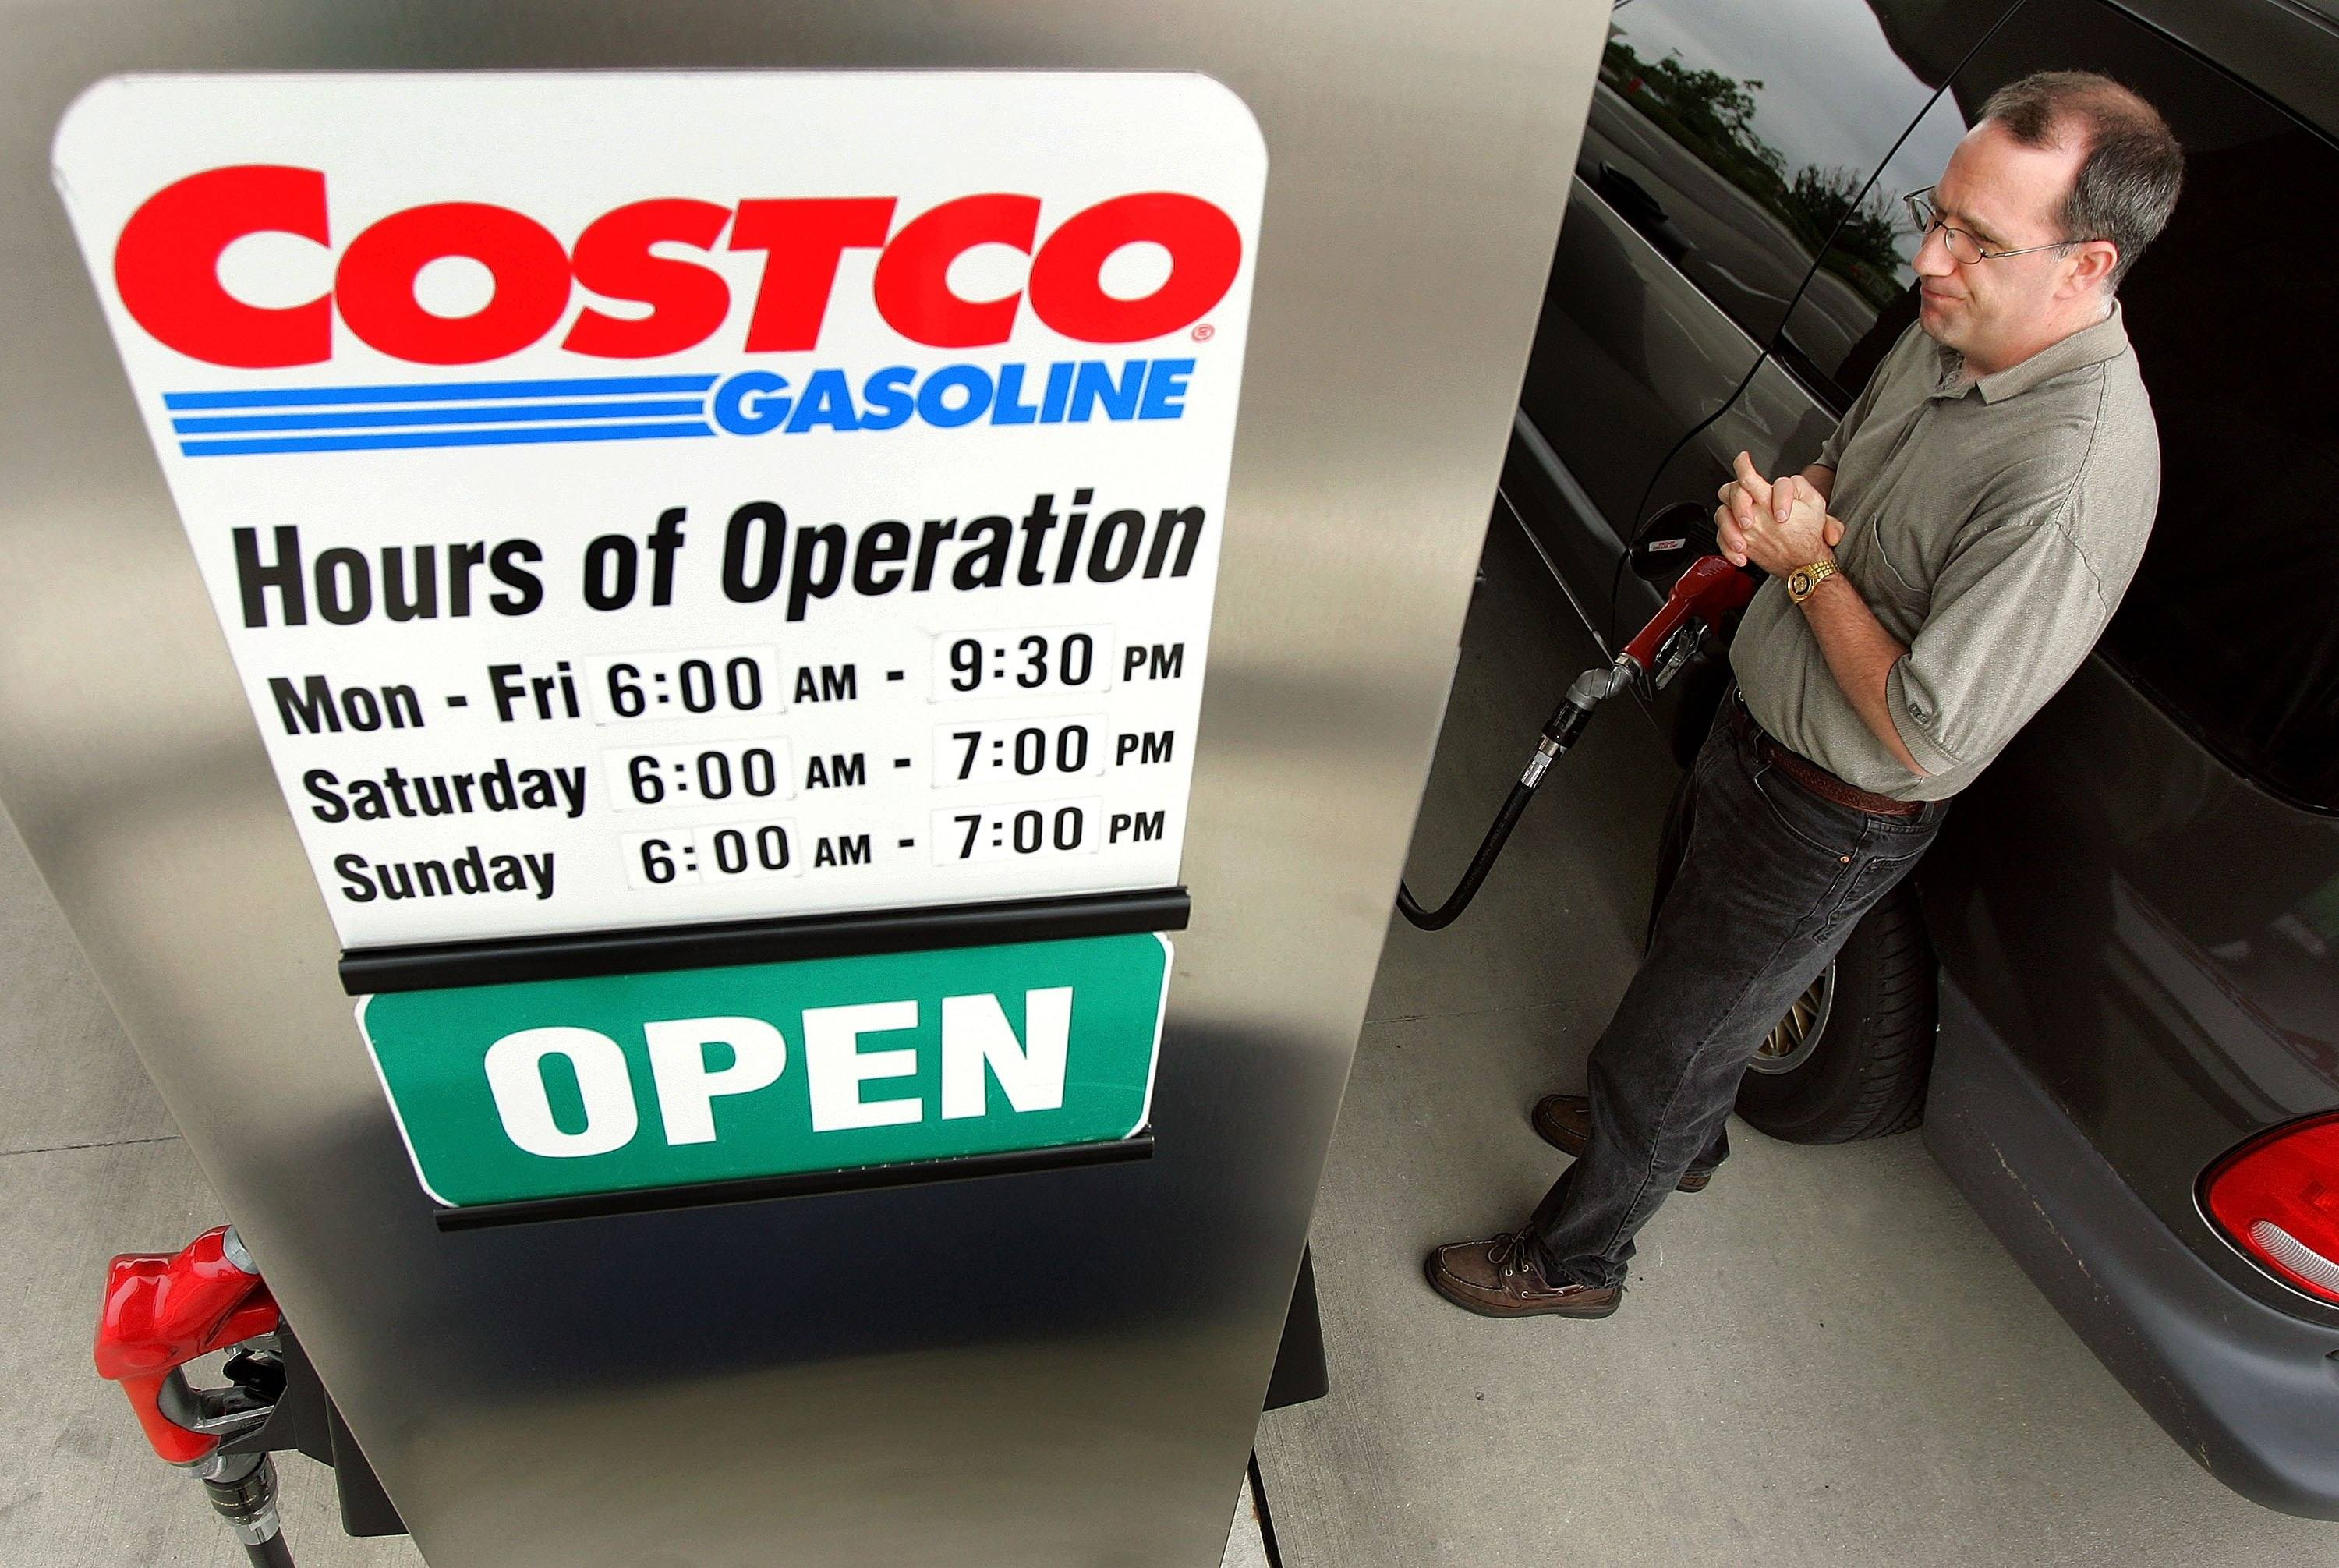 Costo Gas Does Costco Really Have The Cheapest Gas Prices In The Us